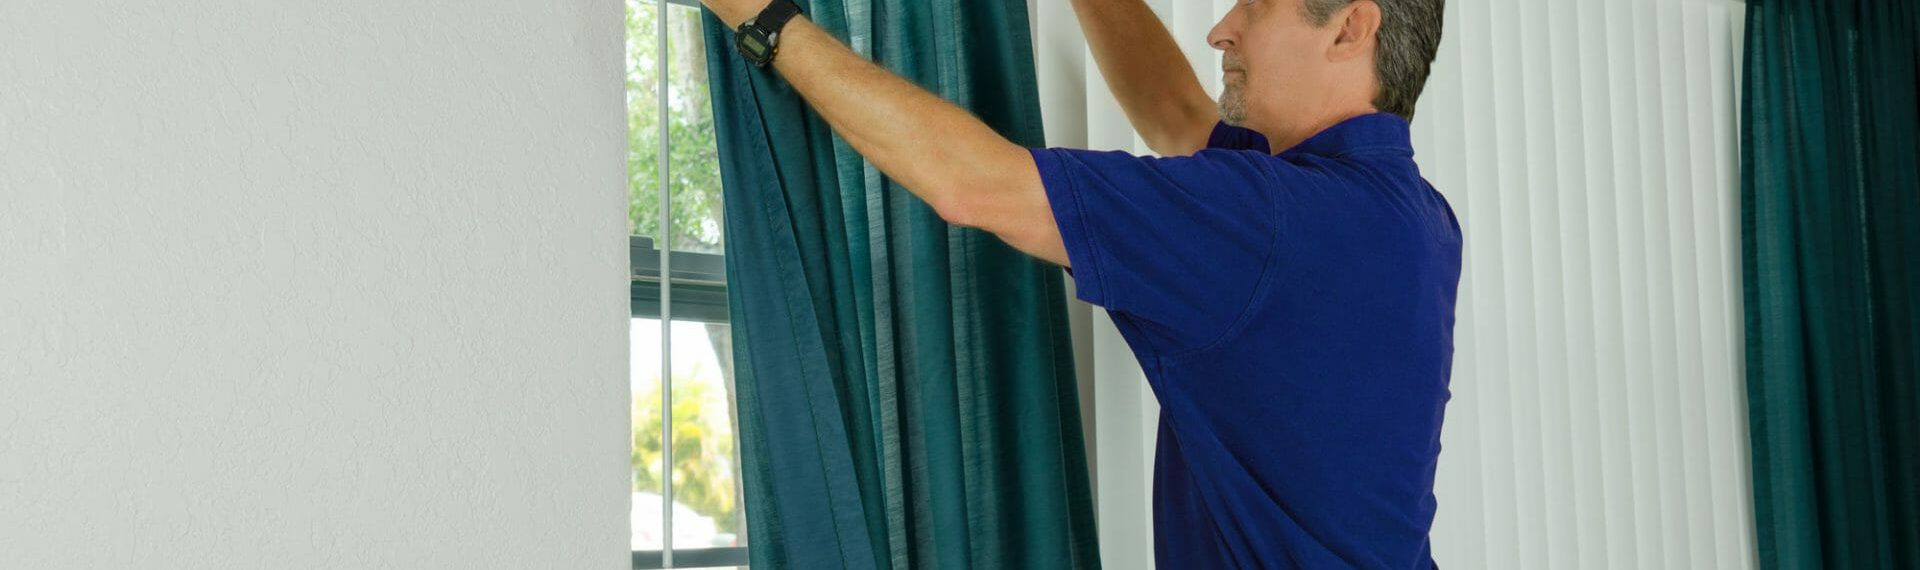 curtain fitter hanging green curtains